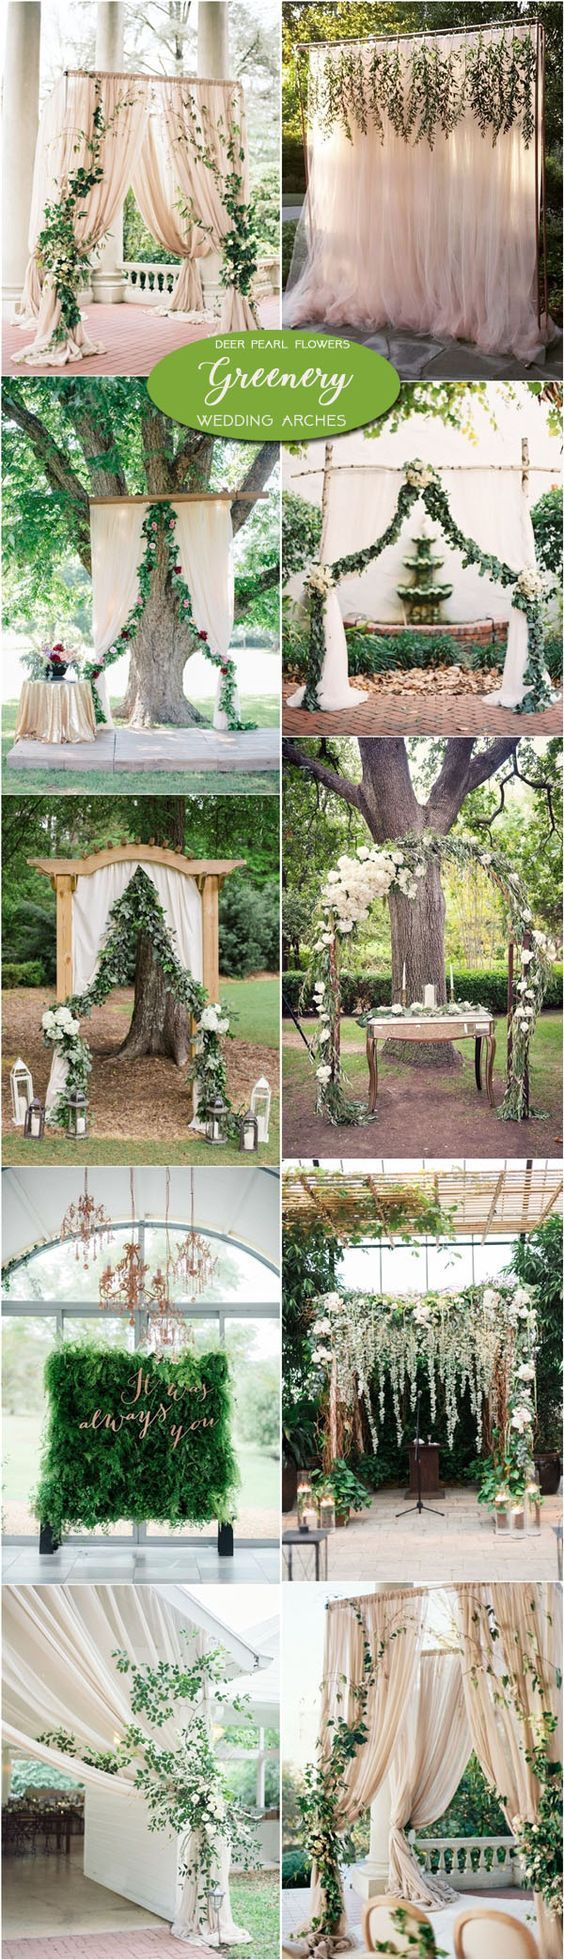 Neutral greenery wedding arch and alter ideas